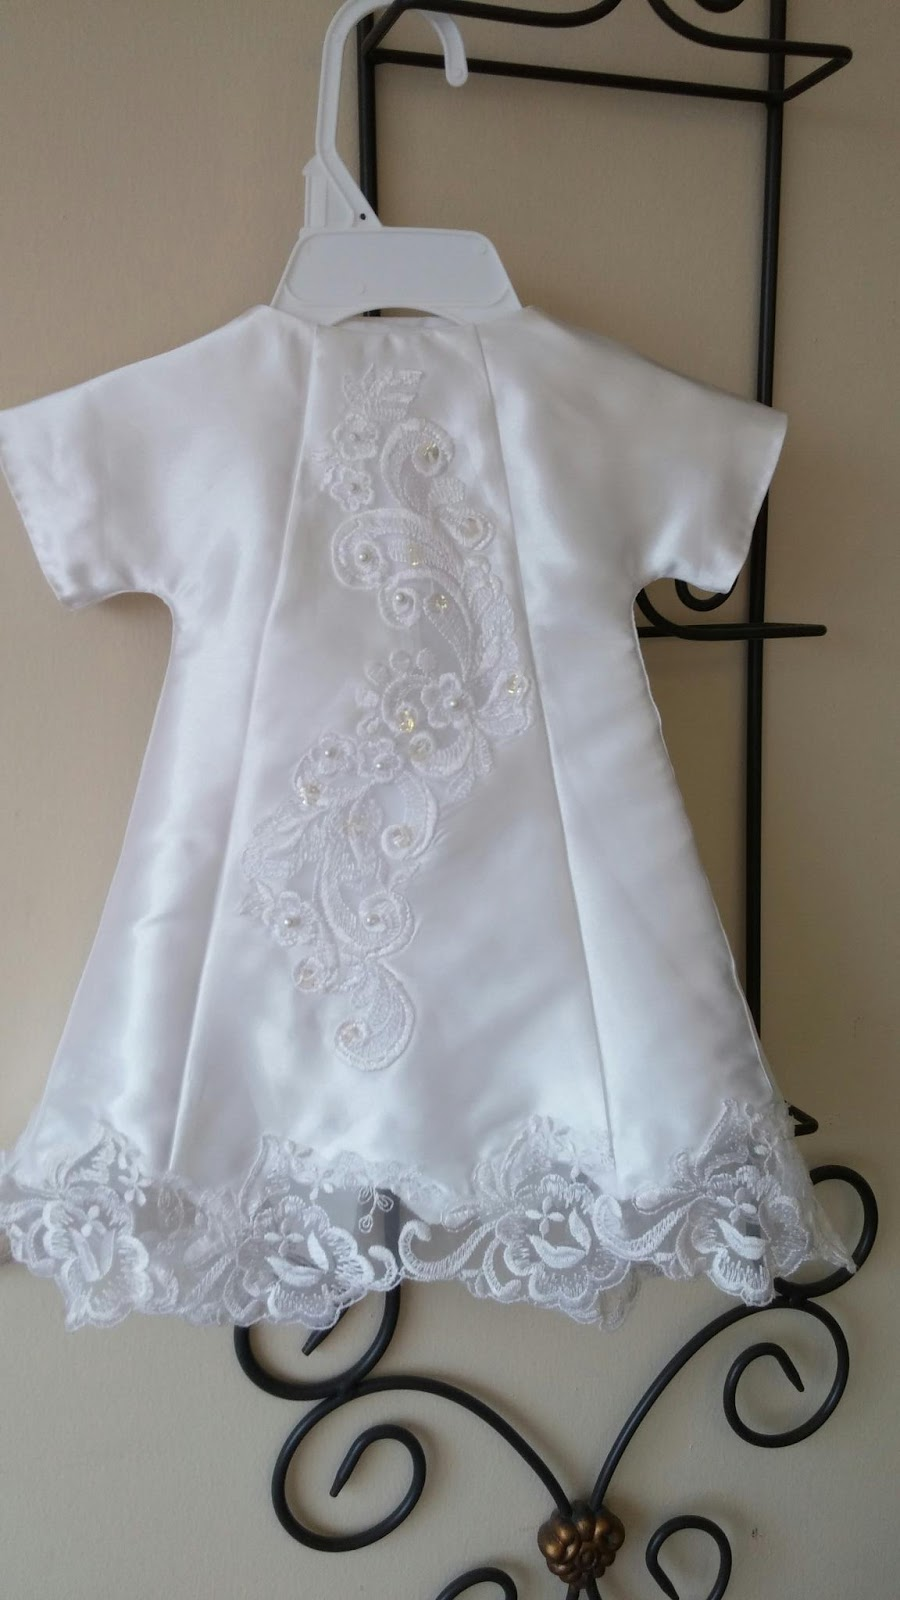 Infant Burial Gowns Made From Wedding Dresses - Wedding Dresses ...